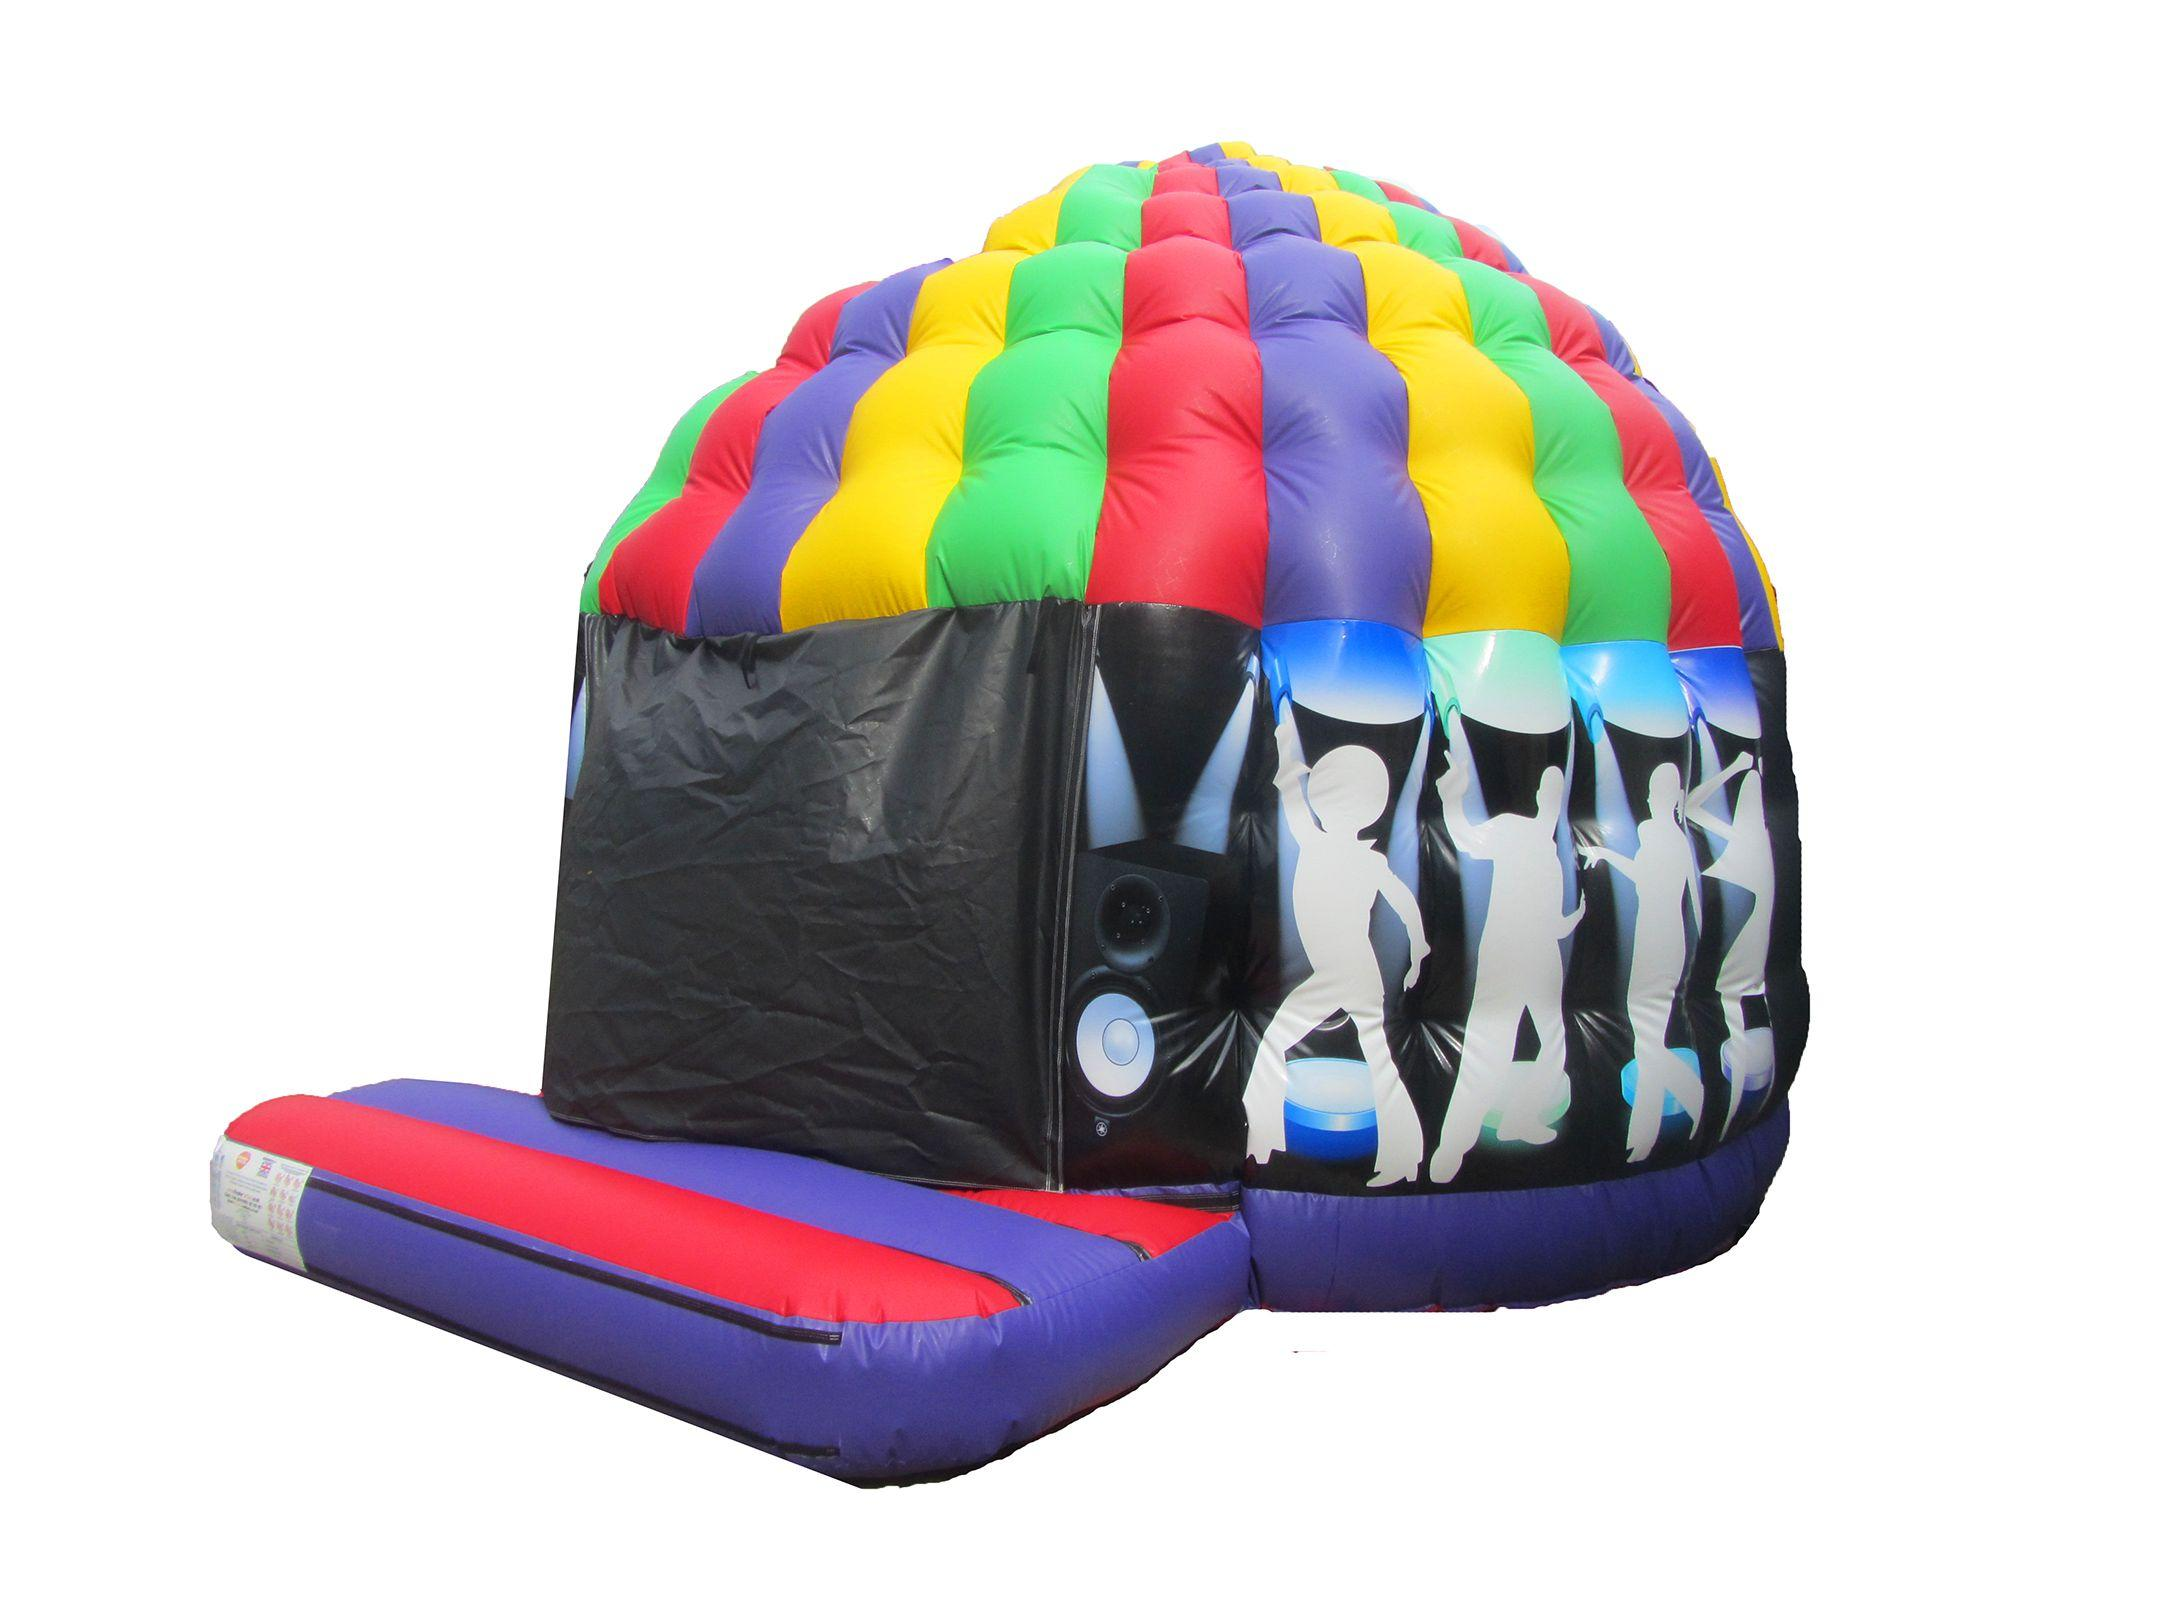 Unisex Themed Bouncy Disco Dome